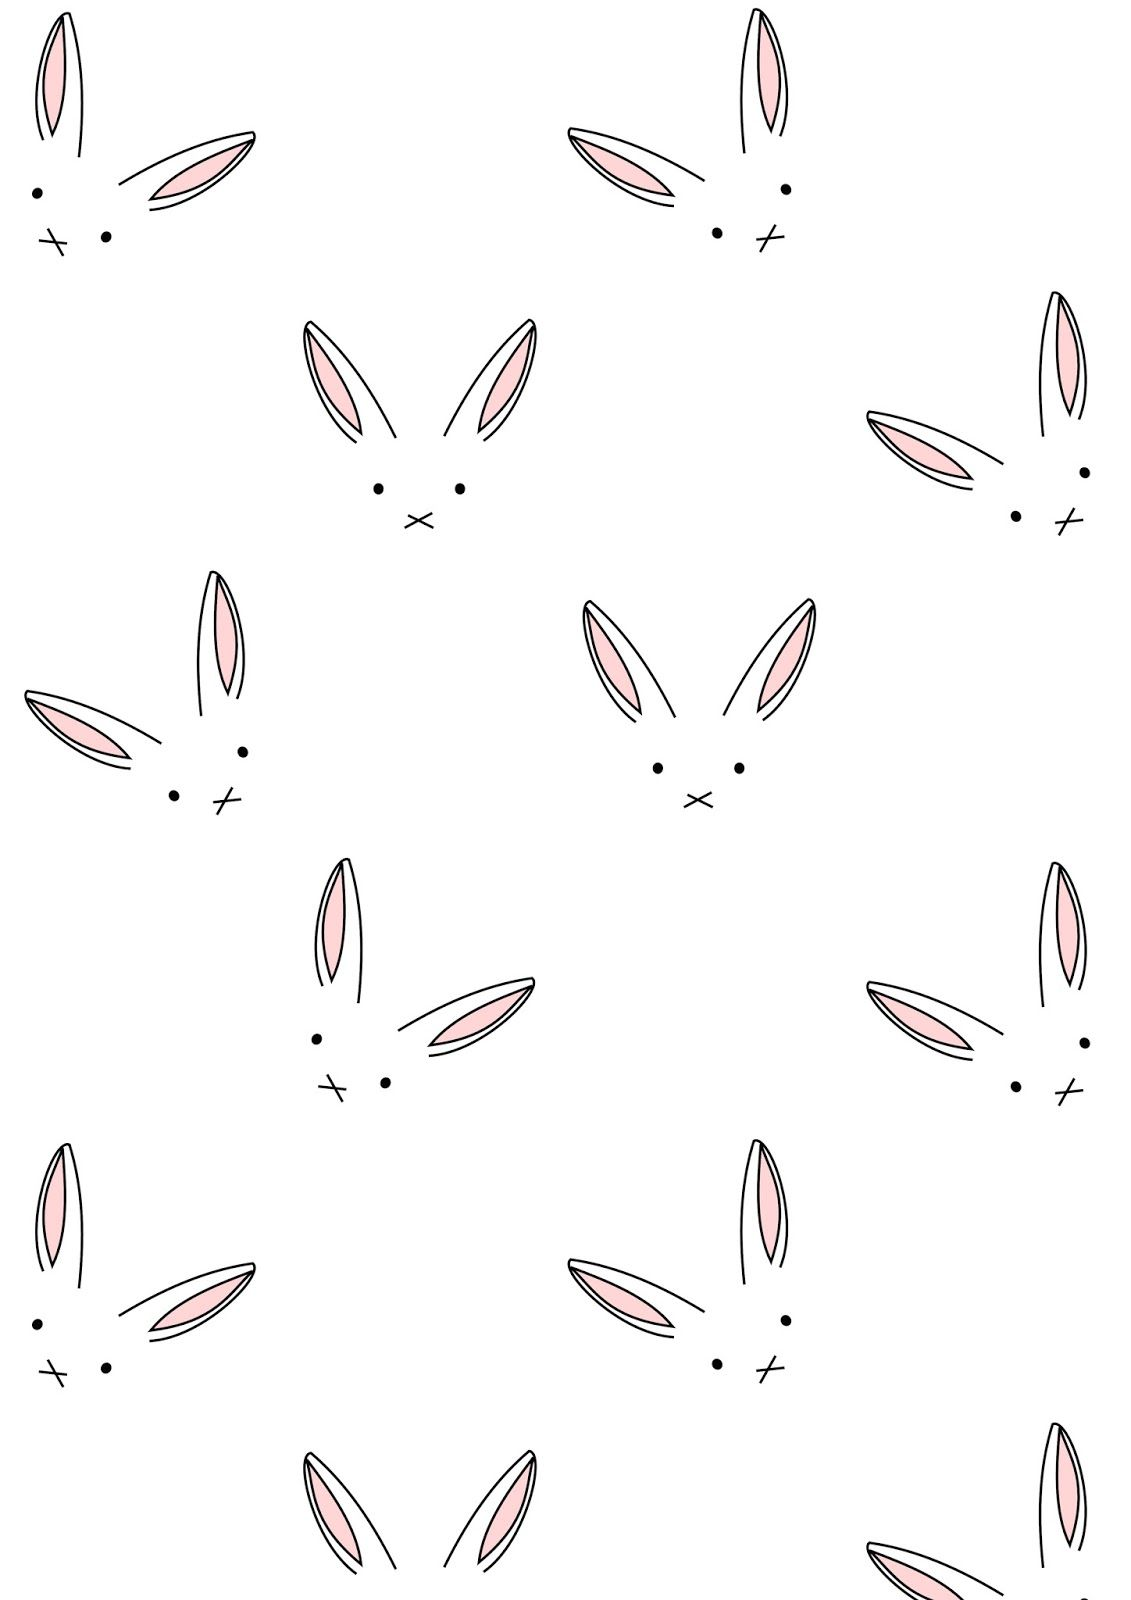 Free digital bunny scrapbooking paper minimalist ausdruckbares i know this isnt a template but i thought it was too cute free printable easter bunny pattern paper maxwellsz